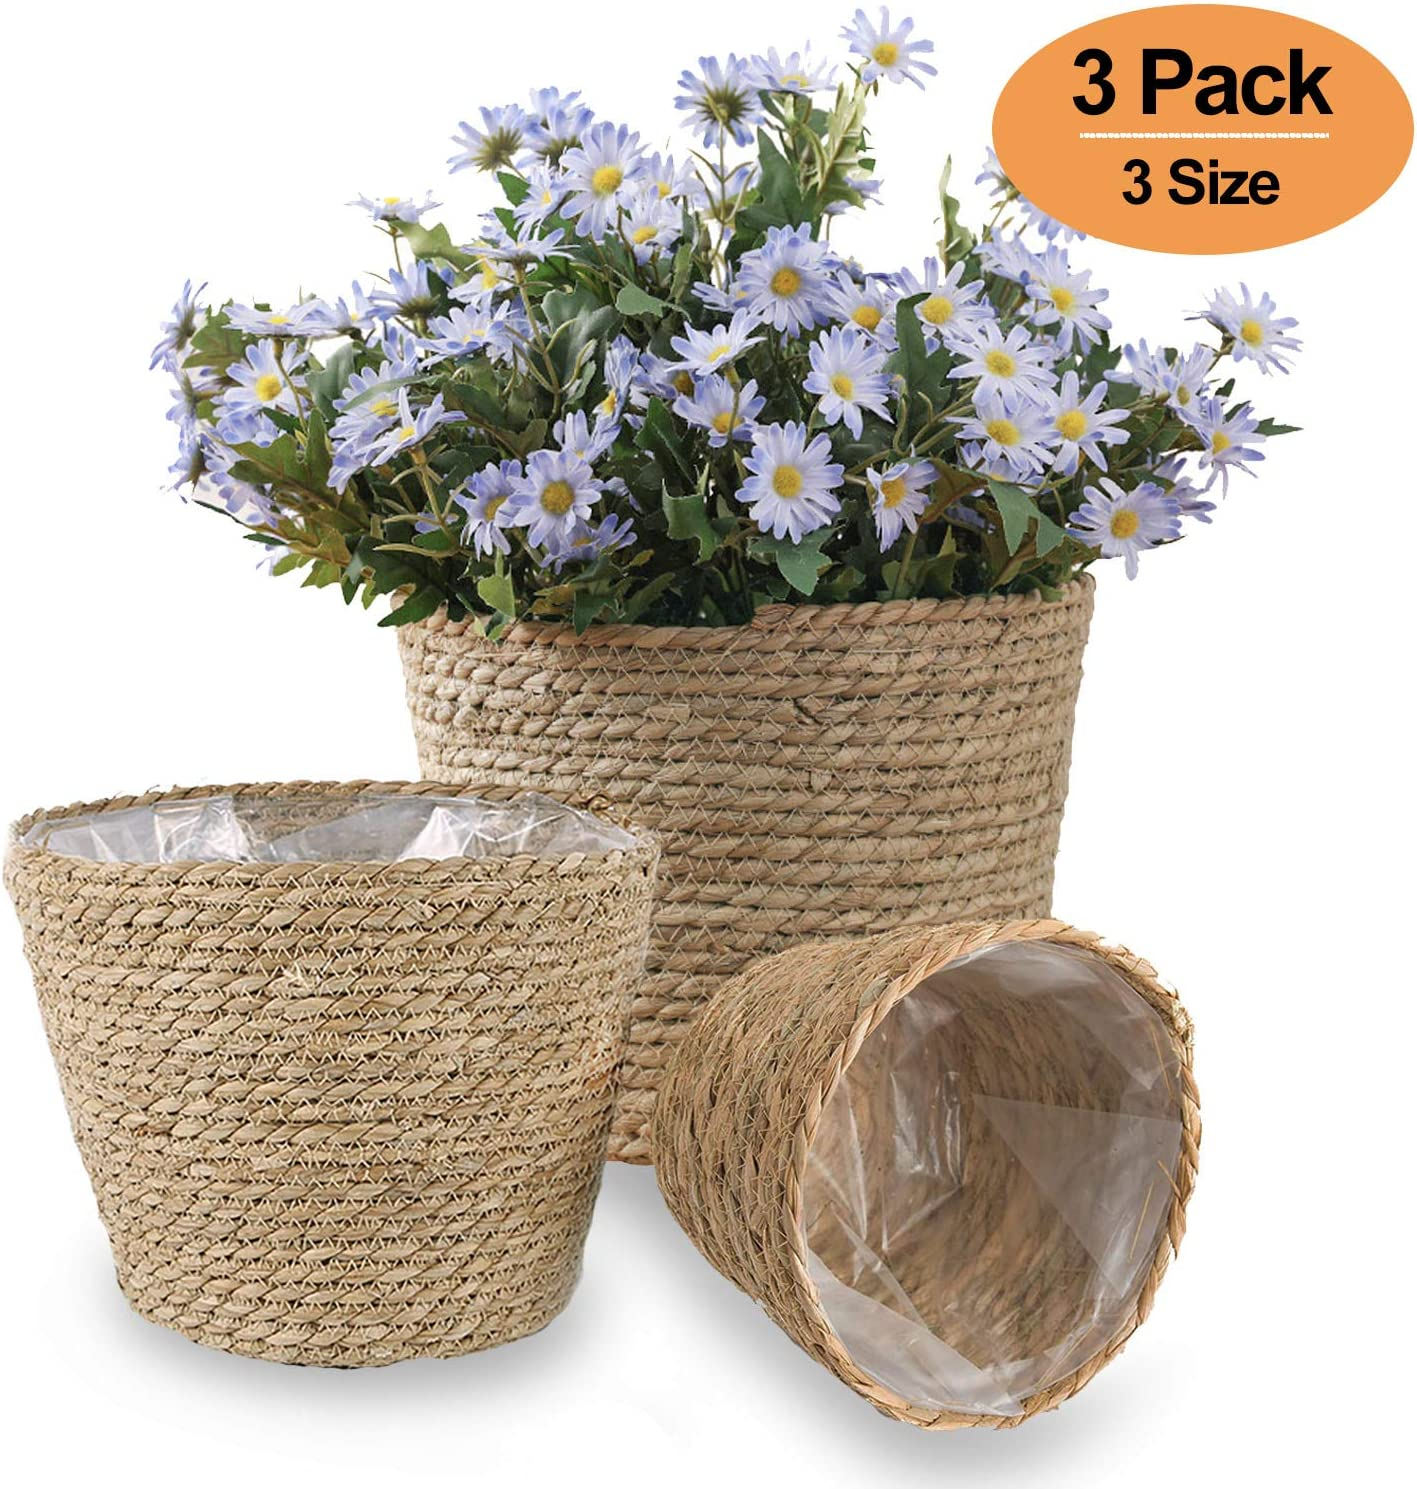 DeeCoo Pack of 3 Handmade Seagrass Planter Basket Indoor Outdoor Flower Pots,Plant Containers, Plant Pot Cover Basket, Storage Bin Plant Holders, Flower Woven Baskets Rope Basket, Natural Fiber Basket